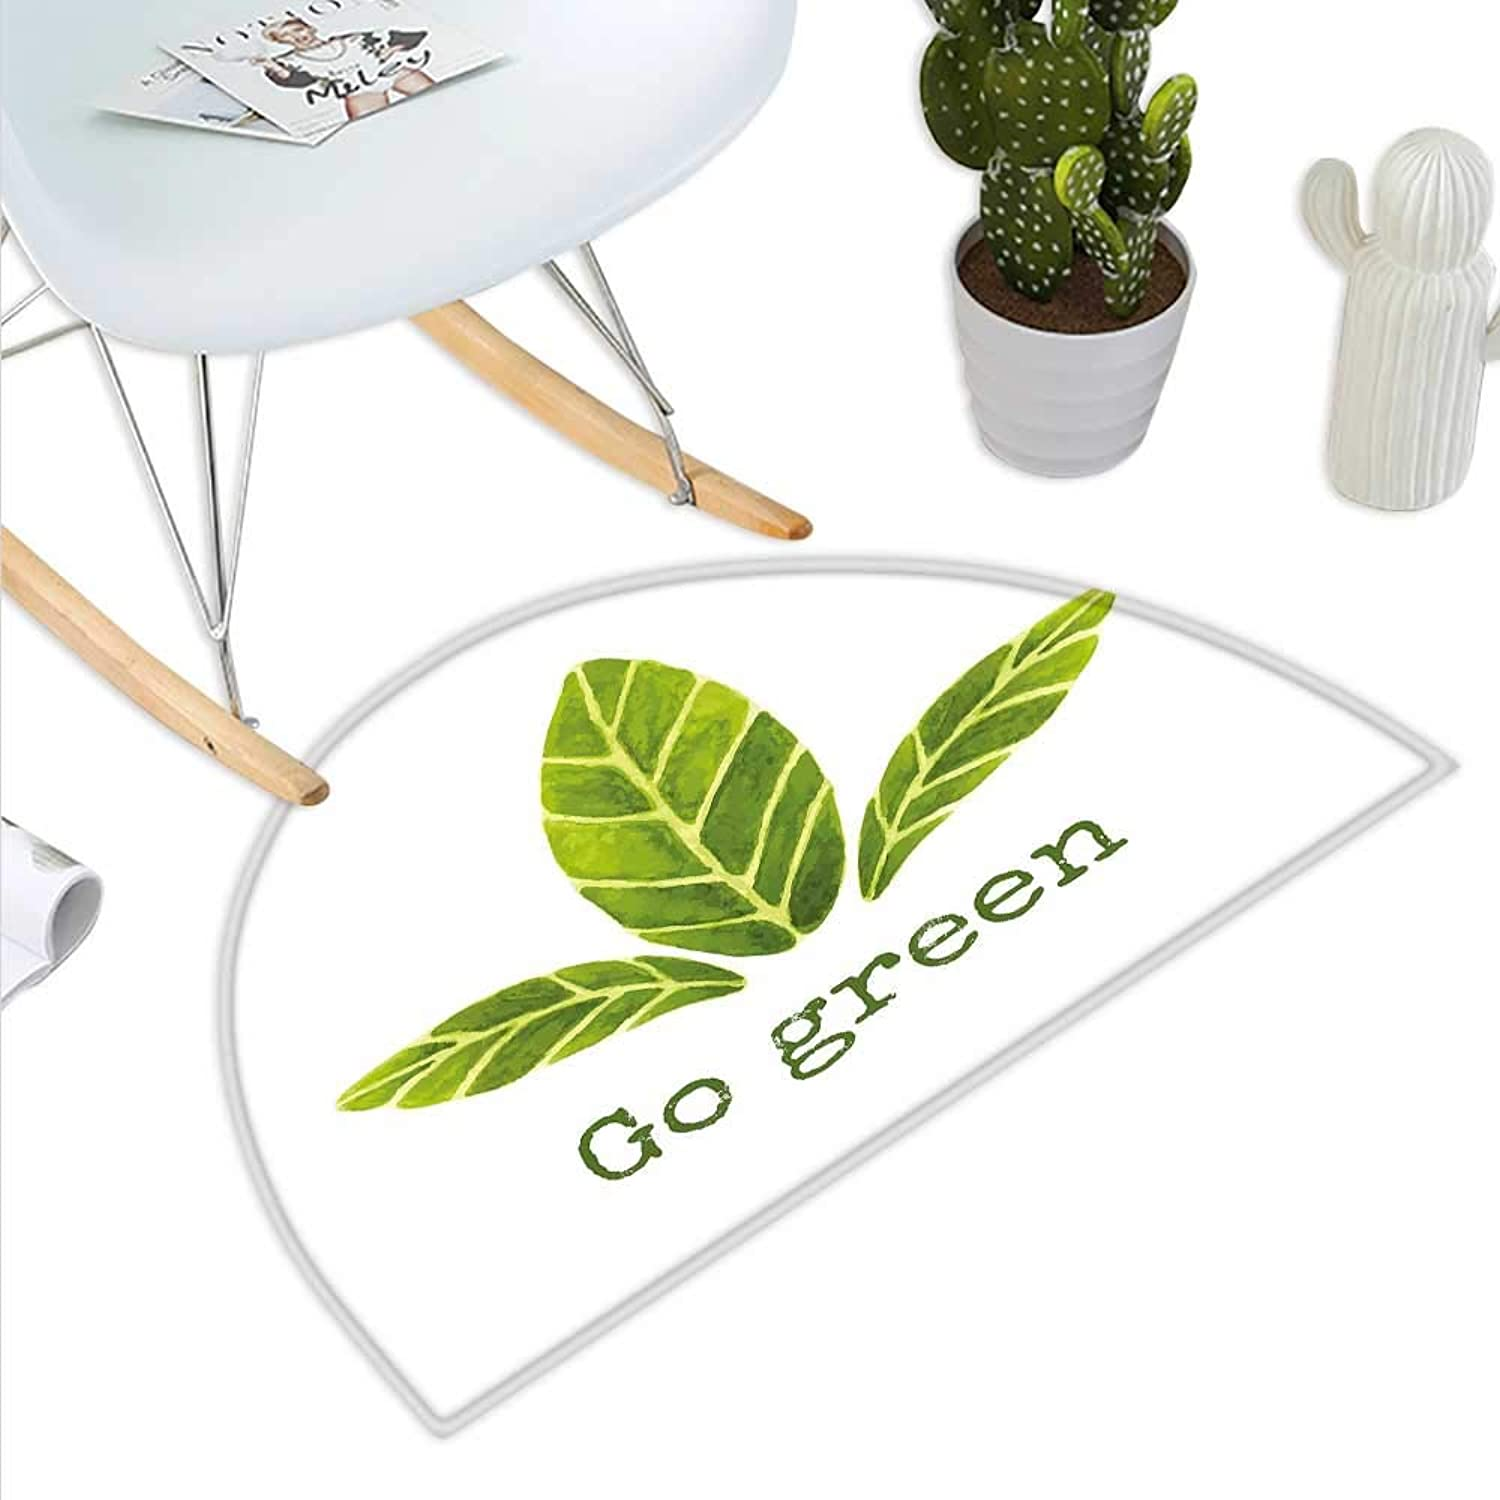 Sage Semicircle Doormat Ecological Concept Hand Painted Style Watercolor Leaves with Go Green Inspirational Halfmoon doormats H 47.2  xD 70.8  Green White